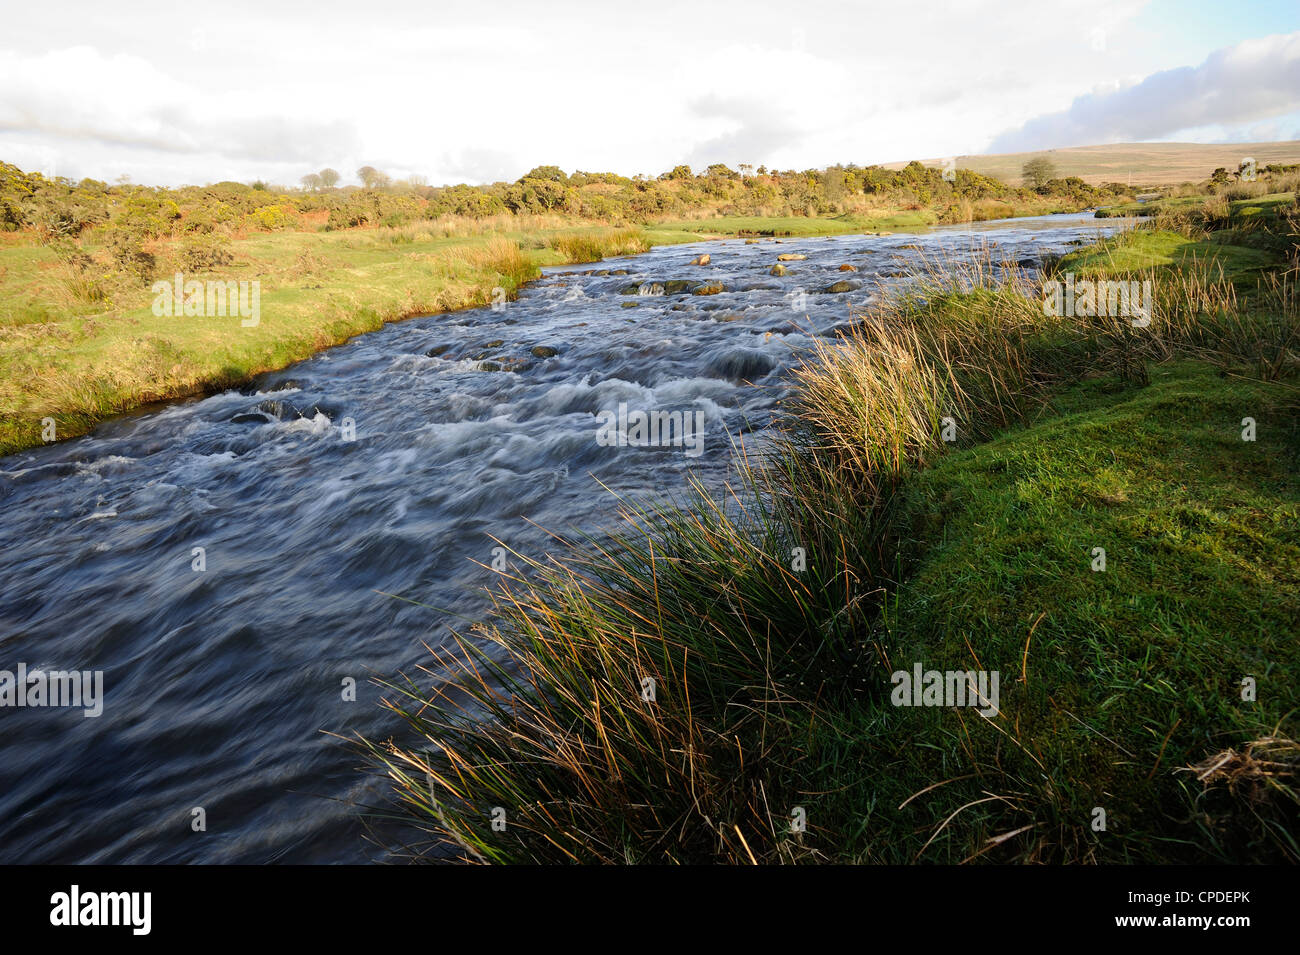 Blacka Brook, in the area where the film War Horse was filmed, Dartmoor National Park, Devon, England, United Kingdom, - Stock Image